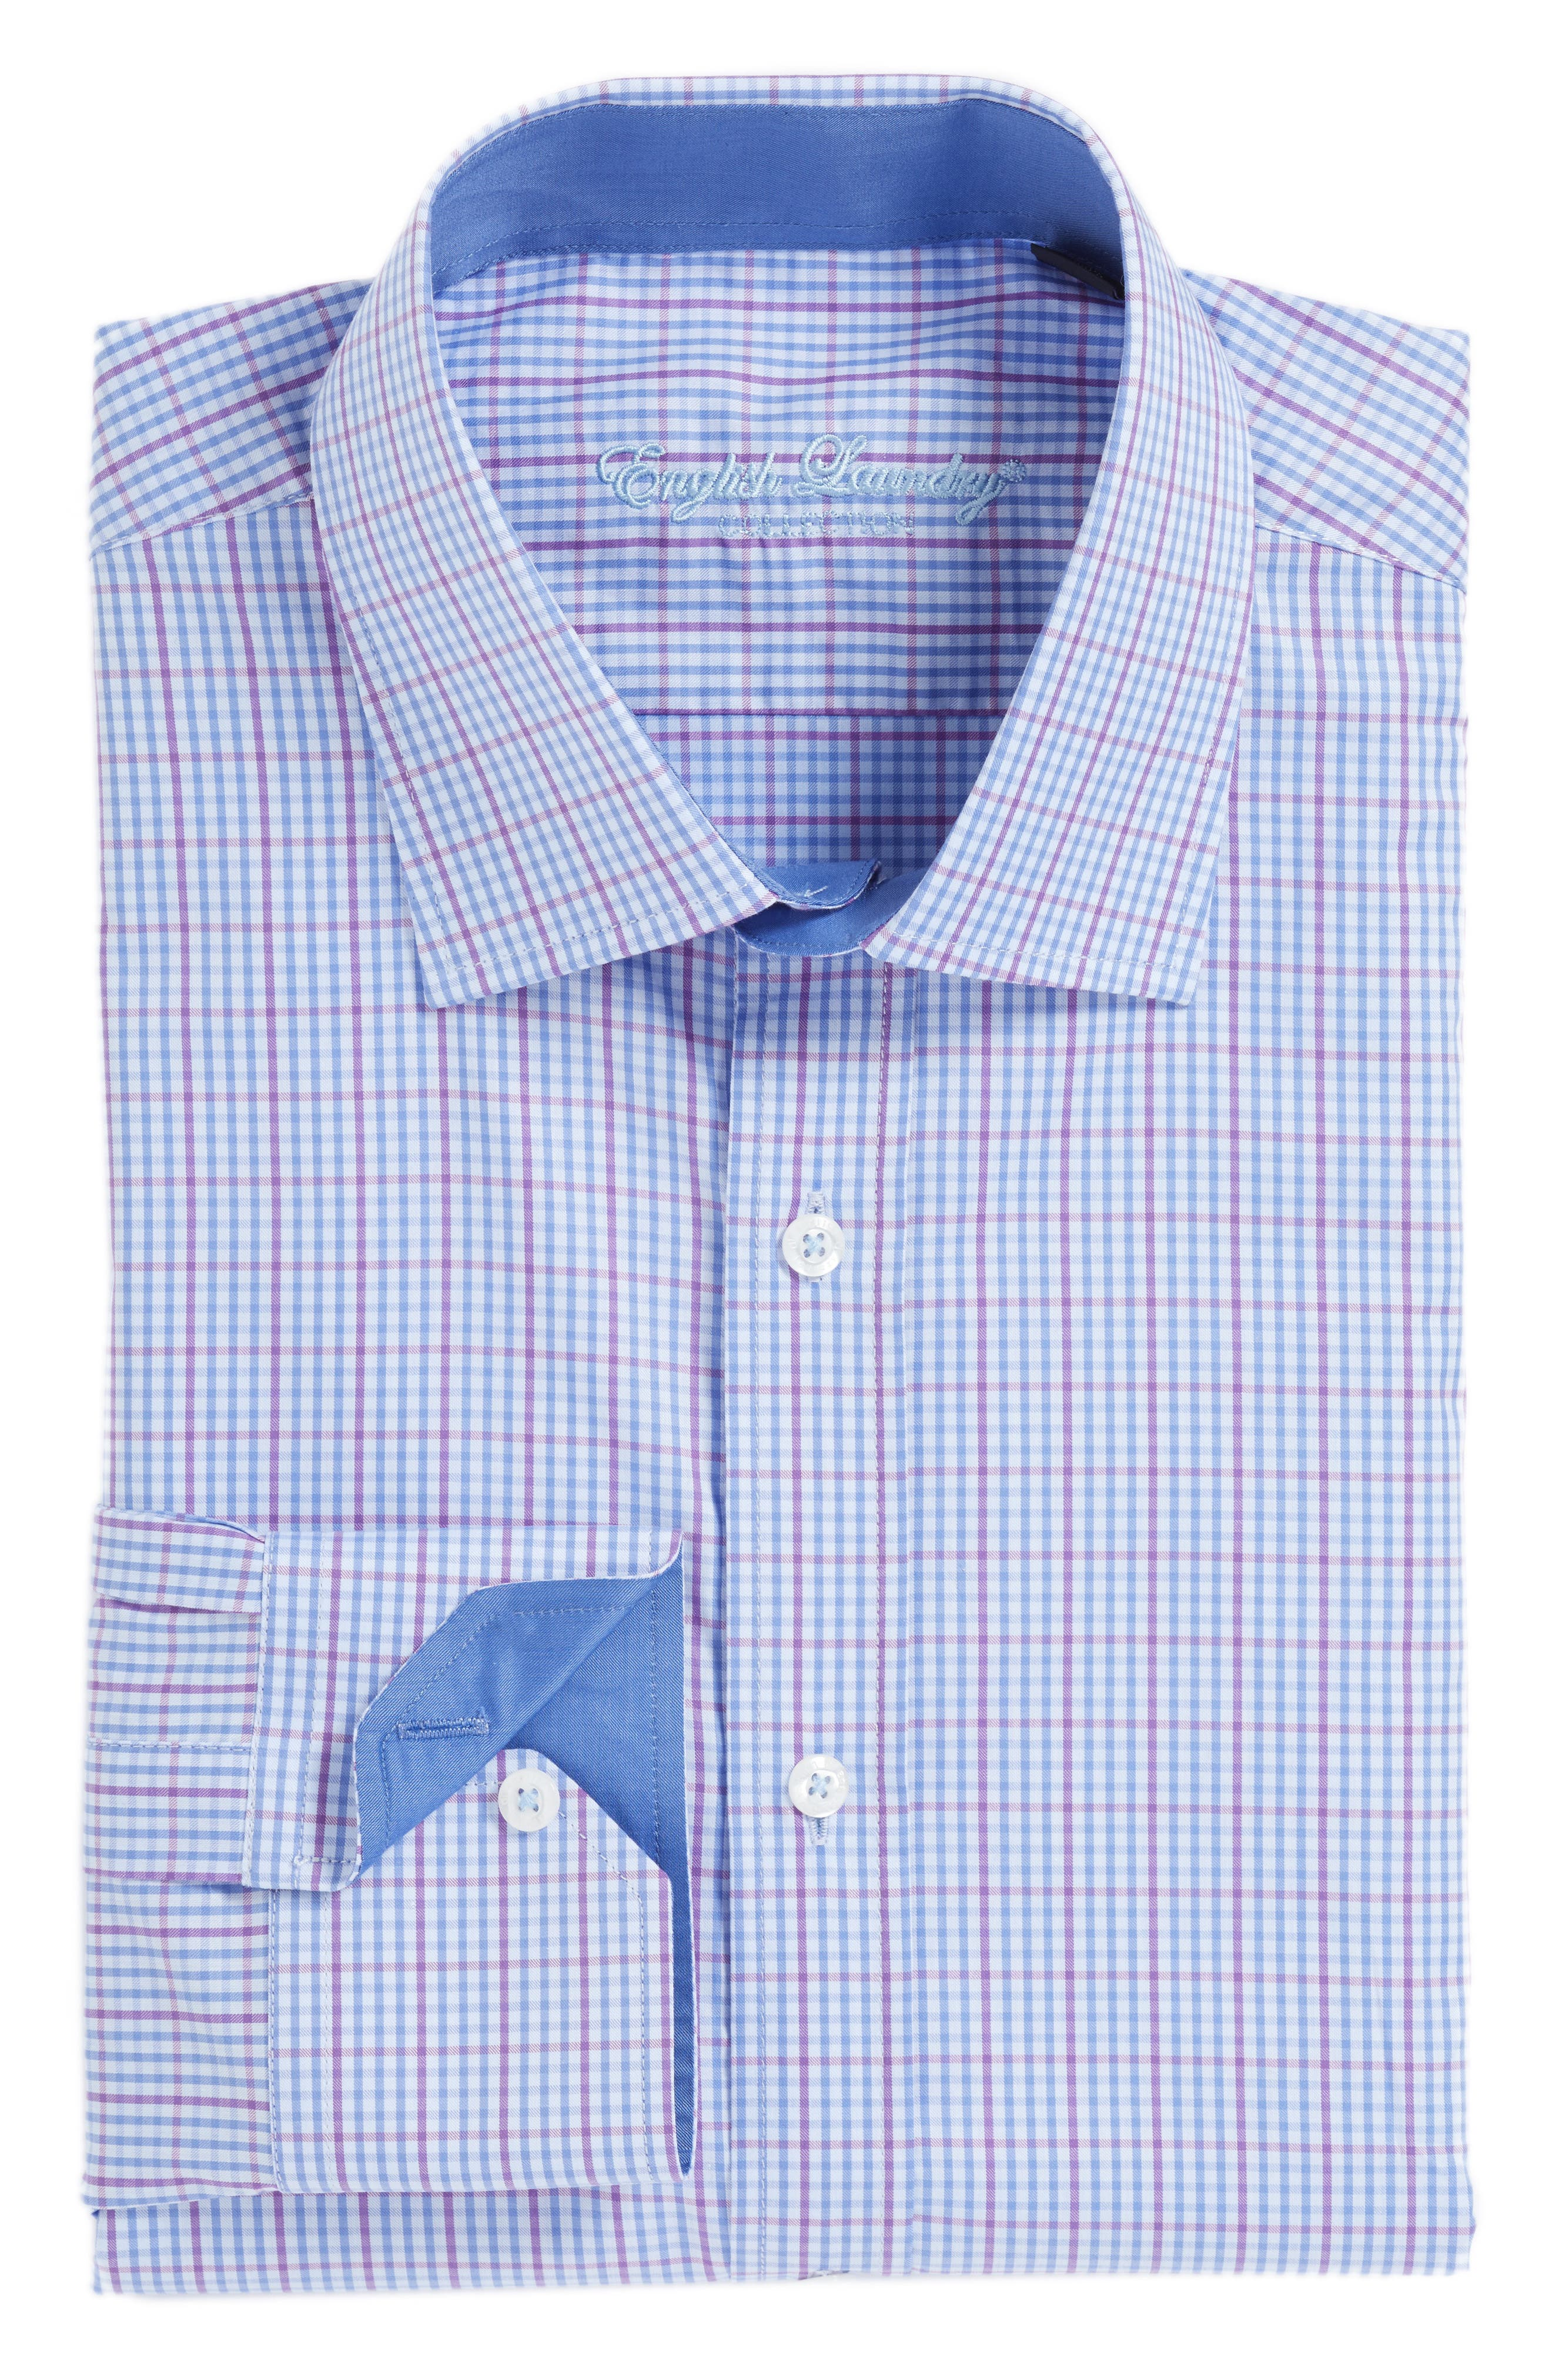 Trim Fit Check Dress Shirt,                             Main thumbnail 1, color,                             Blue